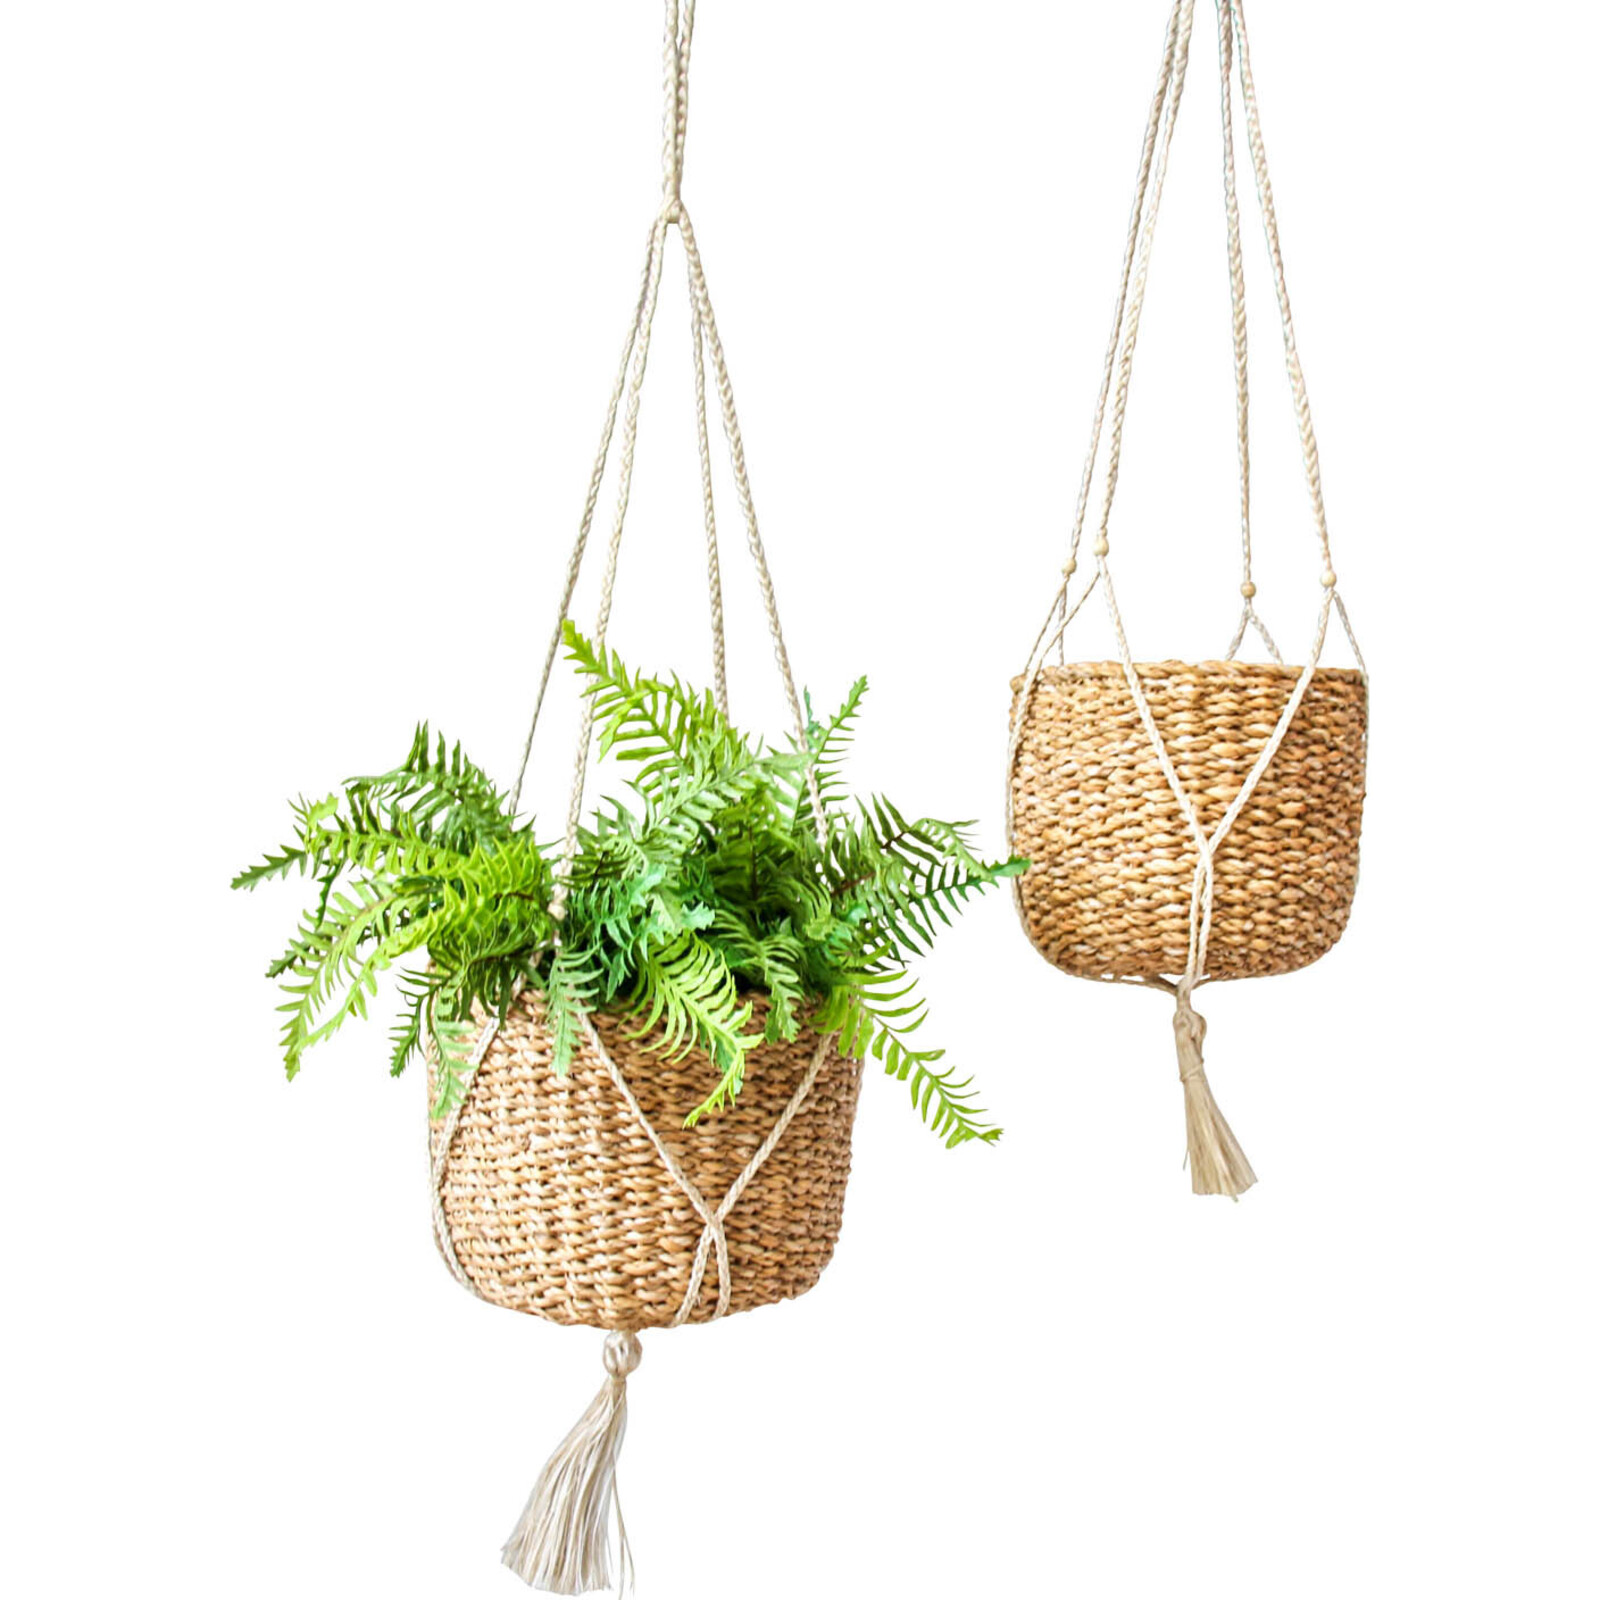 Seagrass S/2 Hanging Planter